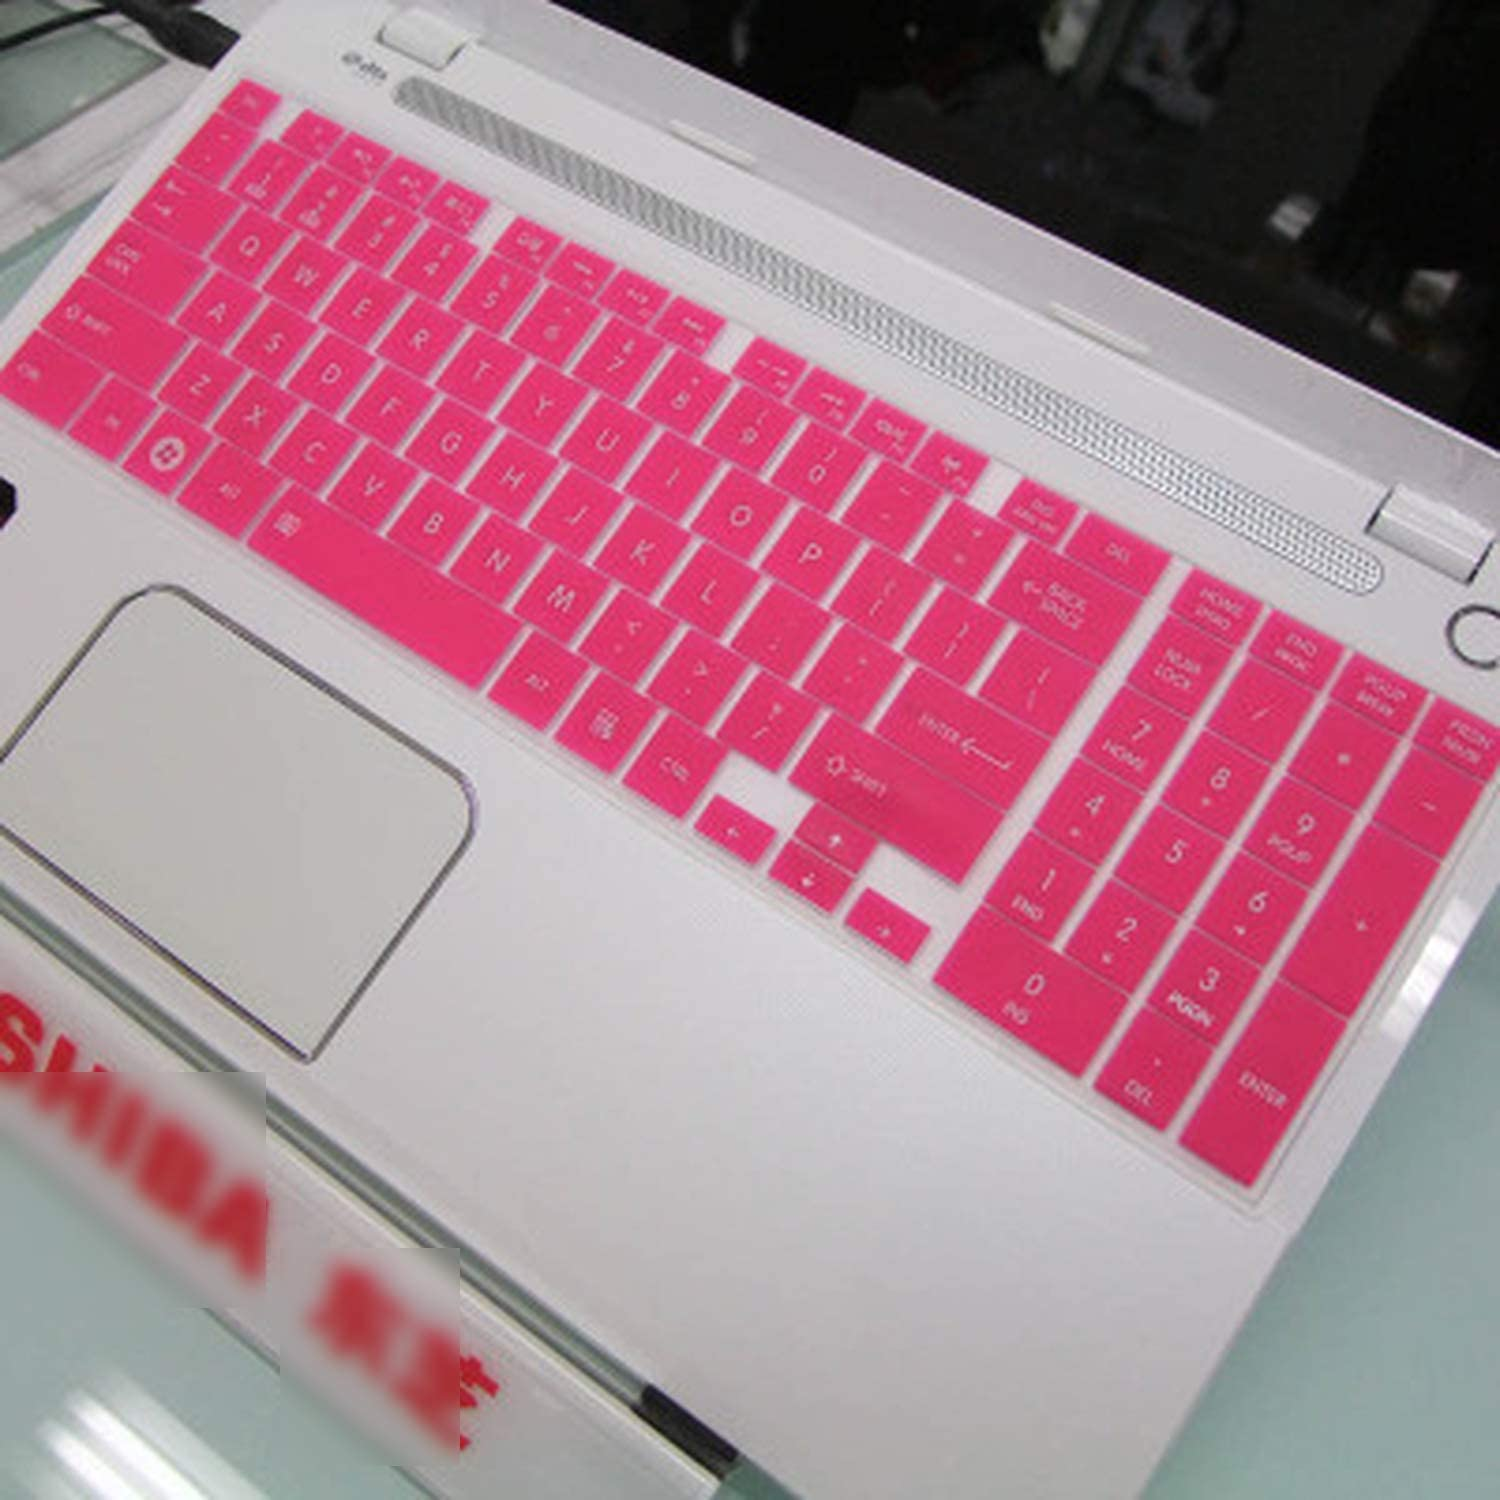 2020 15 17 Silicone Keyboard Cover for Toshiba Satellite C55D C55D B5102 L50 L50D L50 A L850D L855 C50 At03W1 M50 At02S1 M50D-Pink